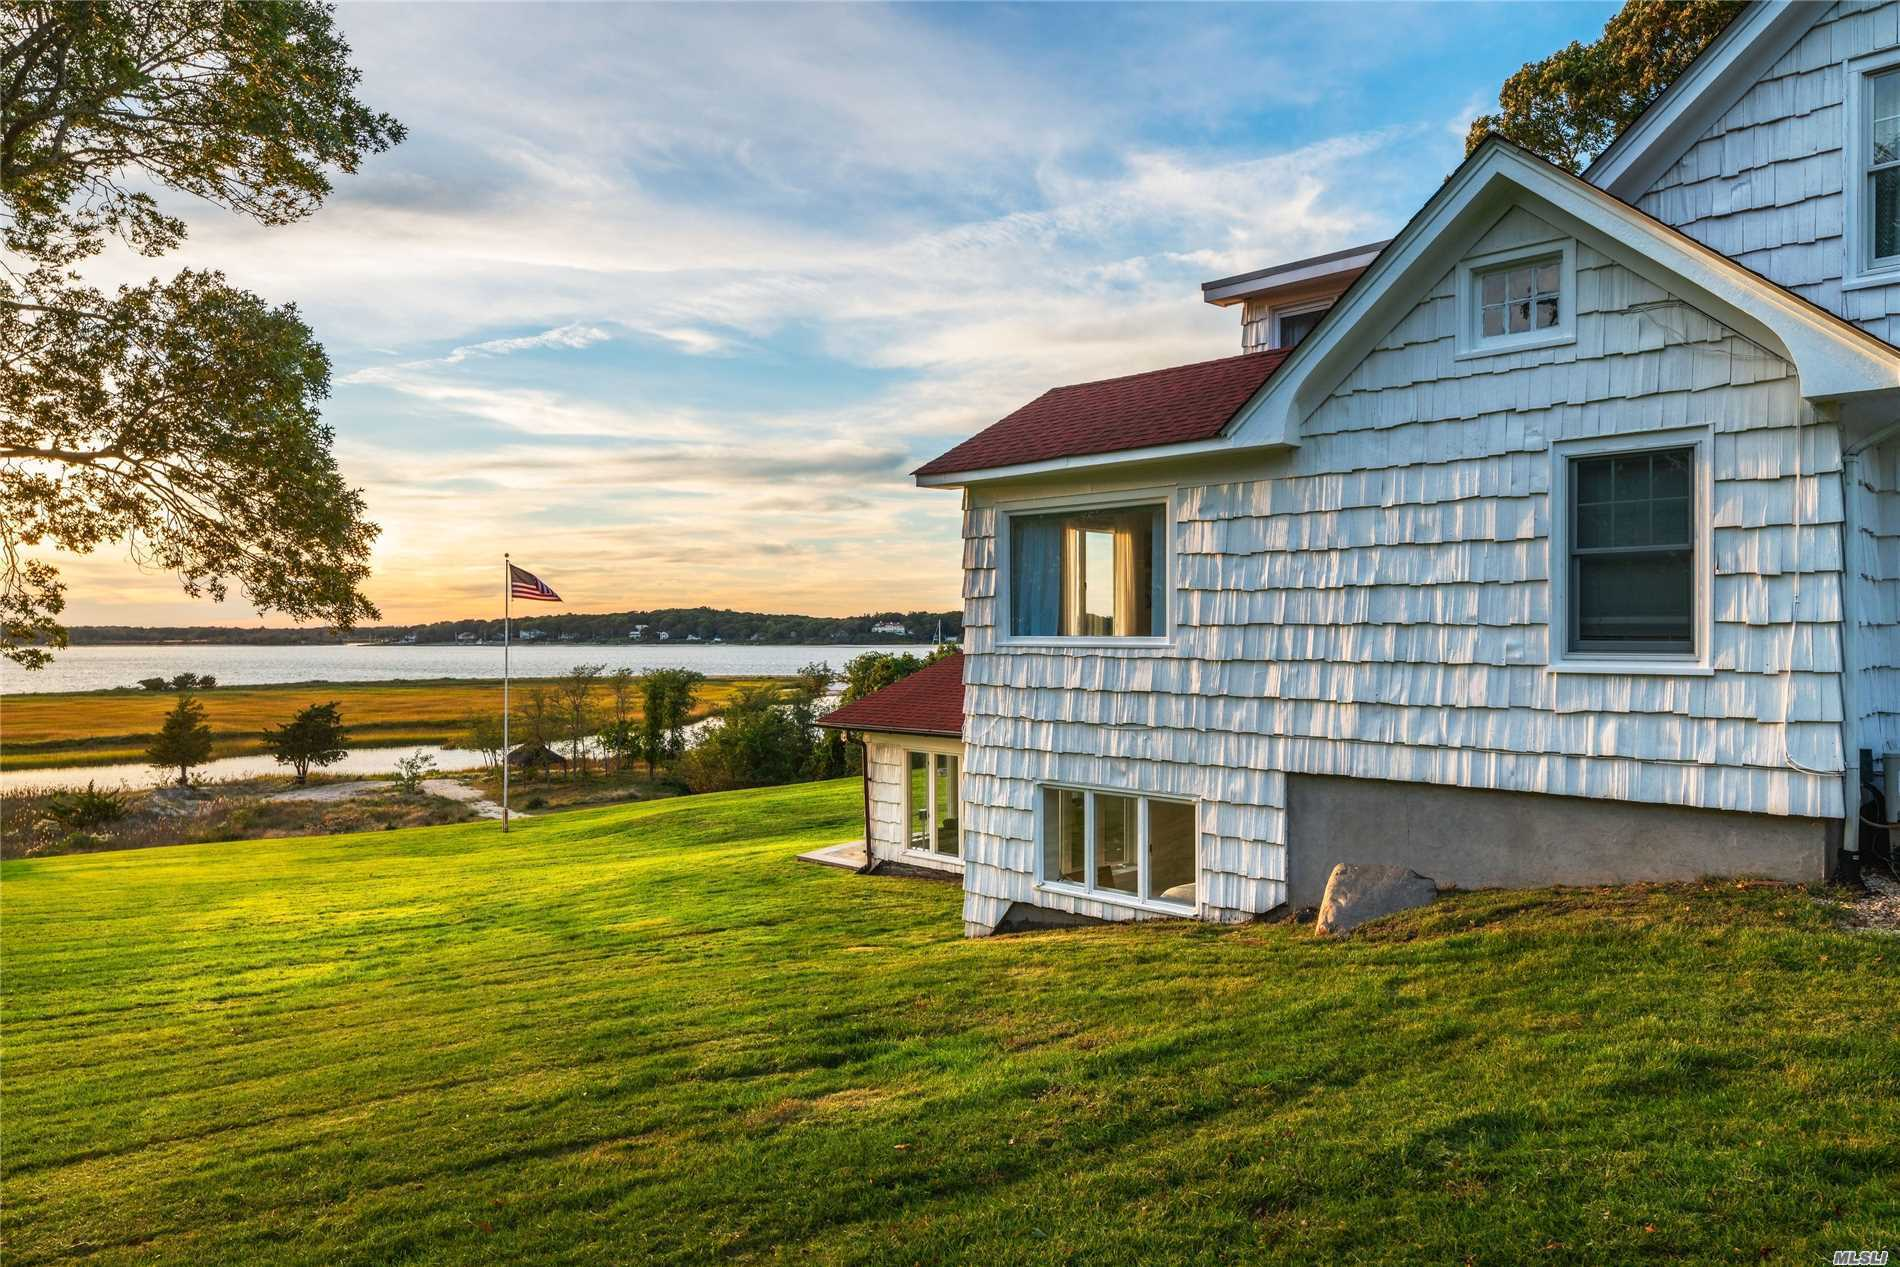 This Breathtaking Setting Offers 3 Acres And Panoramic Bay Views. Watch The Sunrise And Enjoy Sunsets! 259' Of Waterfront, Beach And Privacy. Renovated And Turnkey With 5 Bedrooms, 4.5 Bathrooms, Sun Room, Dining Room, Great Room And Outdoor Shower. Includes Mooring And Tender. This Is A Showpiece Property To Enjoy Everything The North Fork Has To Offer! Surrounded By Vineyards, Restaurants And Great Shopping.